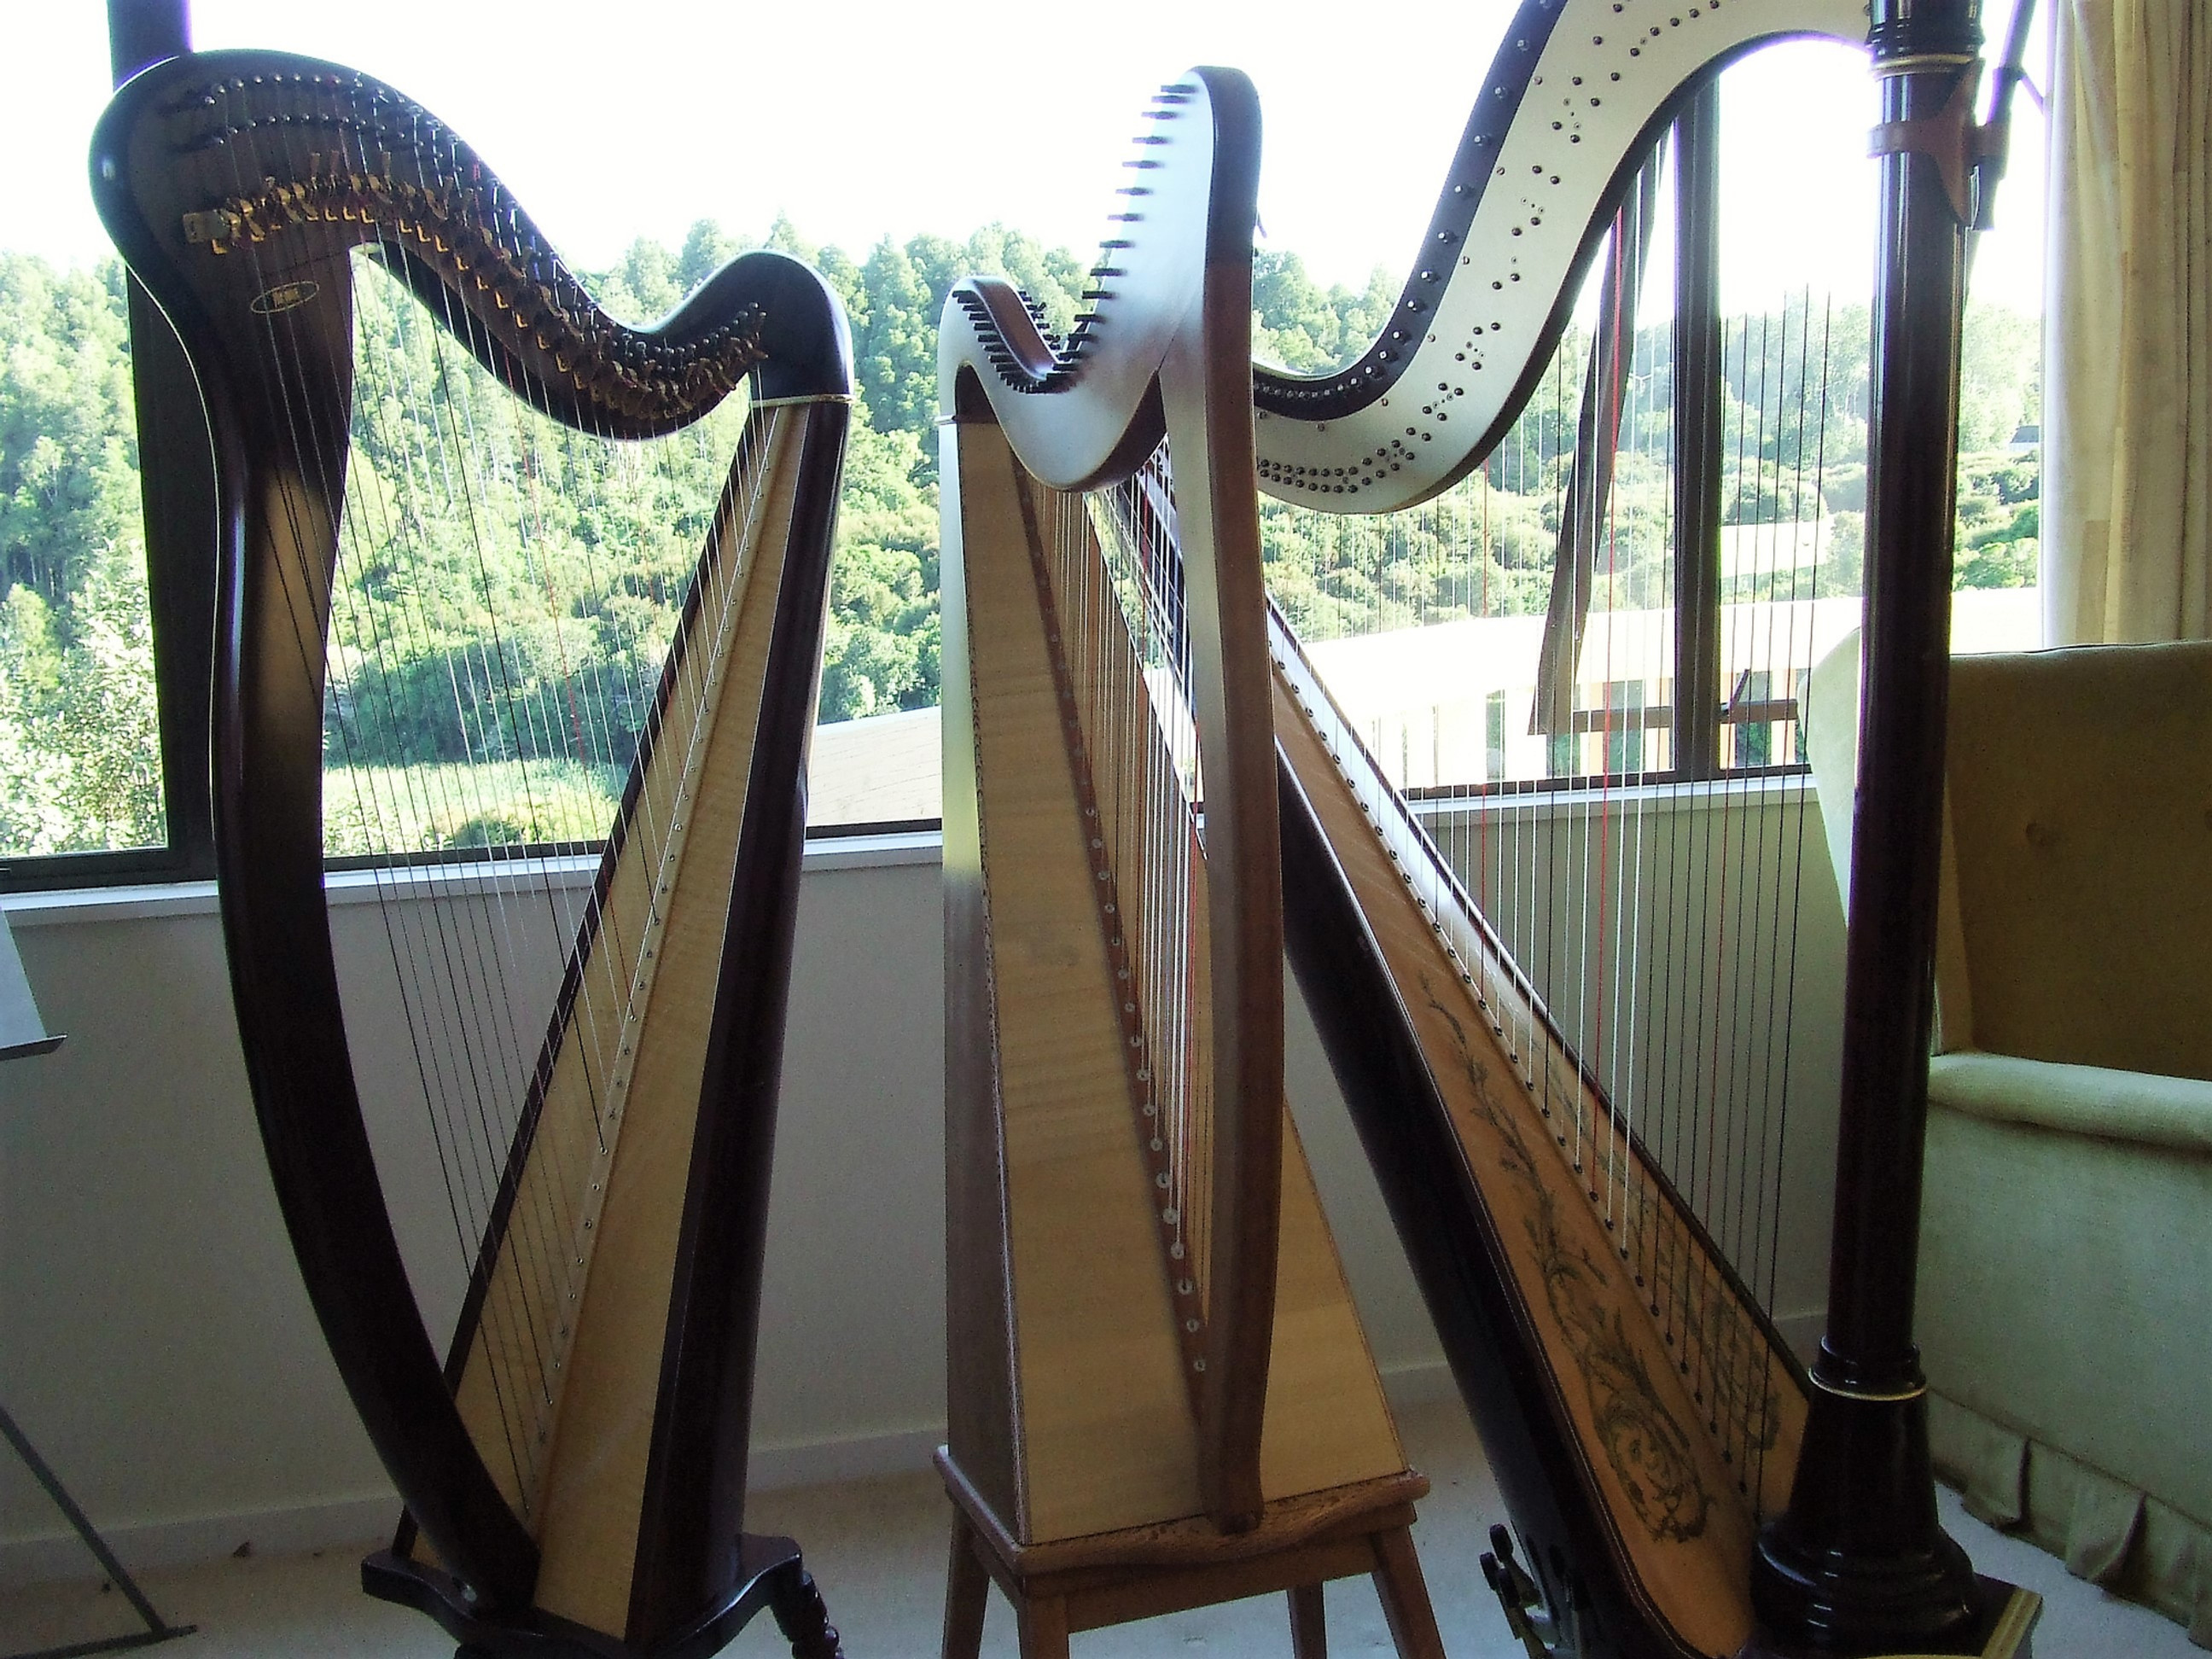 Lever or Pedal Harp